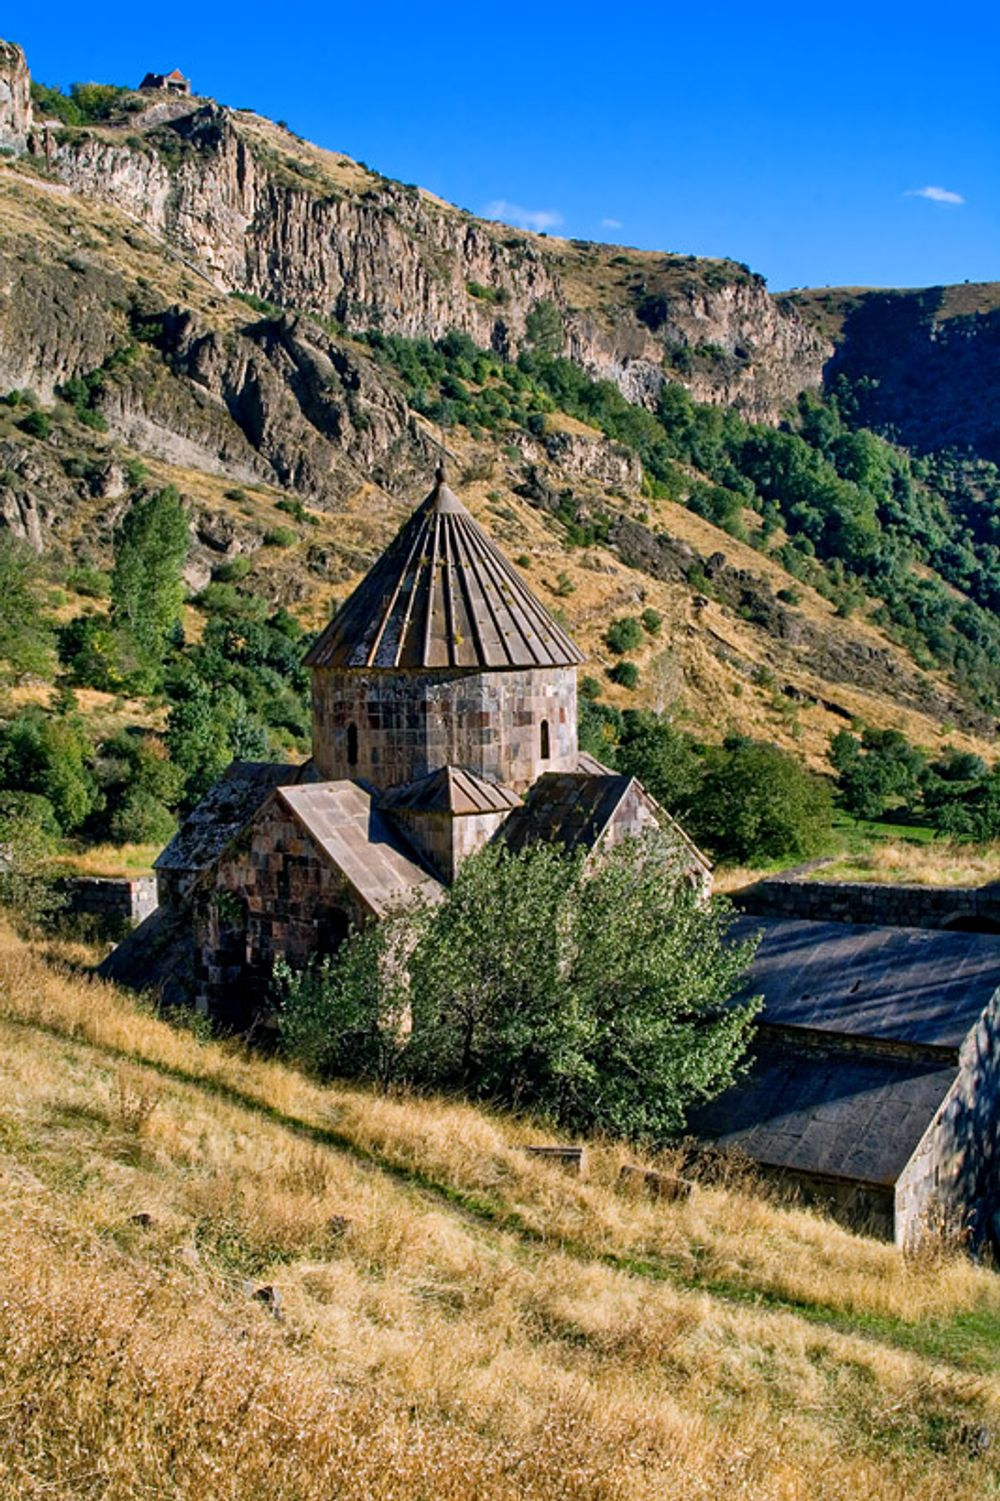 title: Rocks of Gndevank Armenia